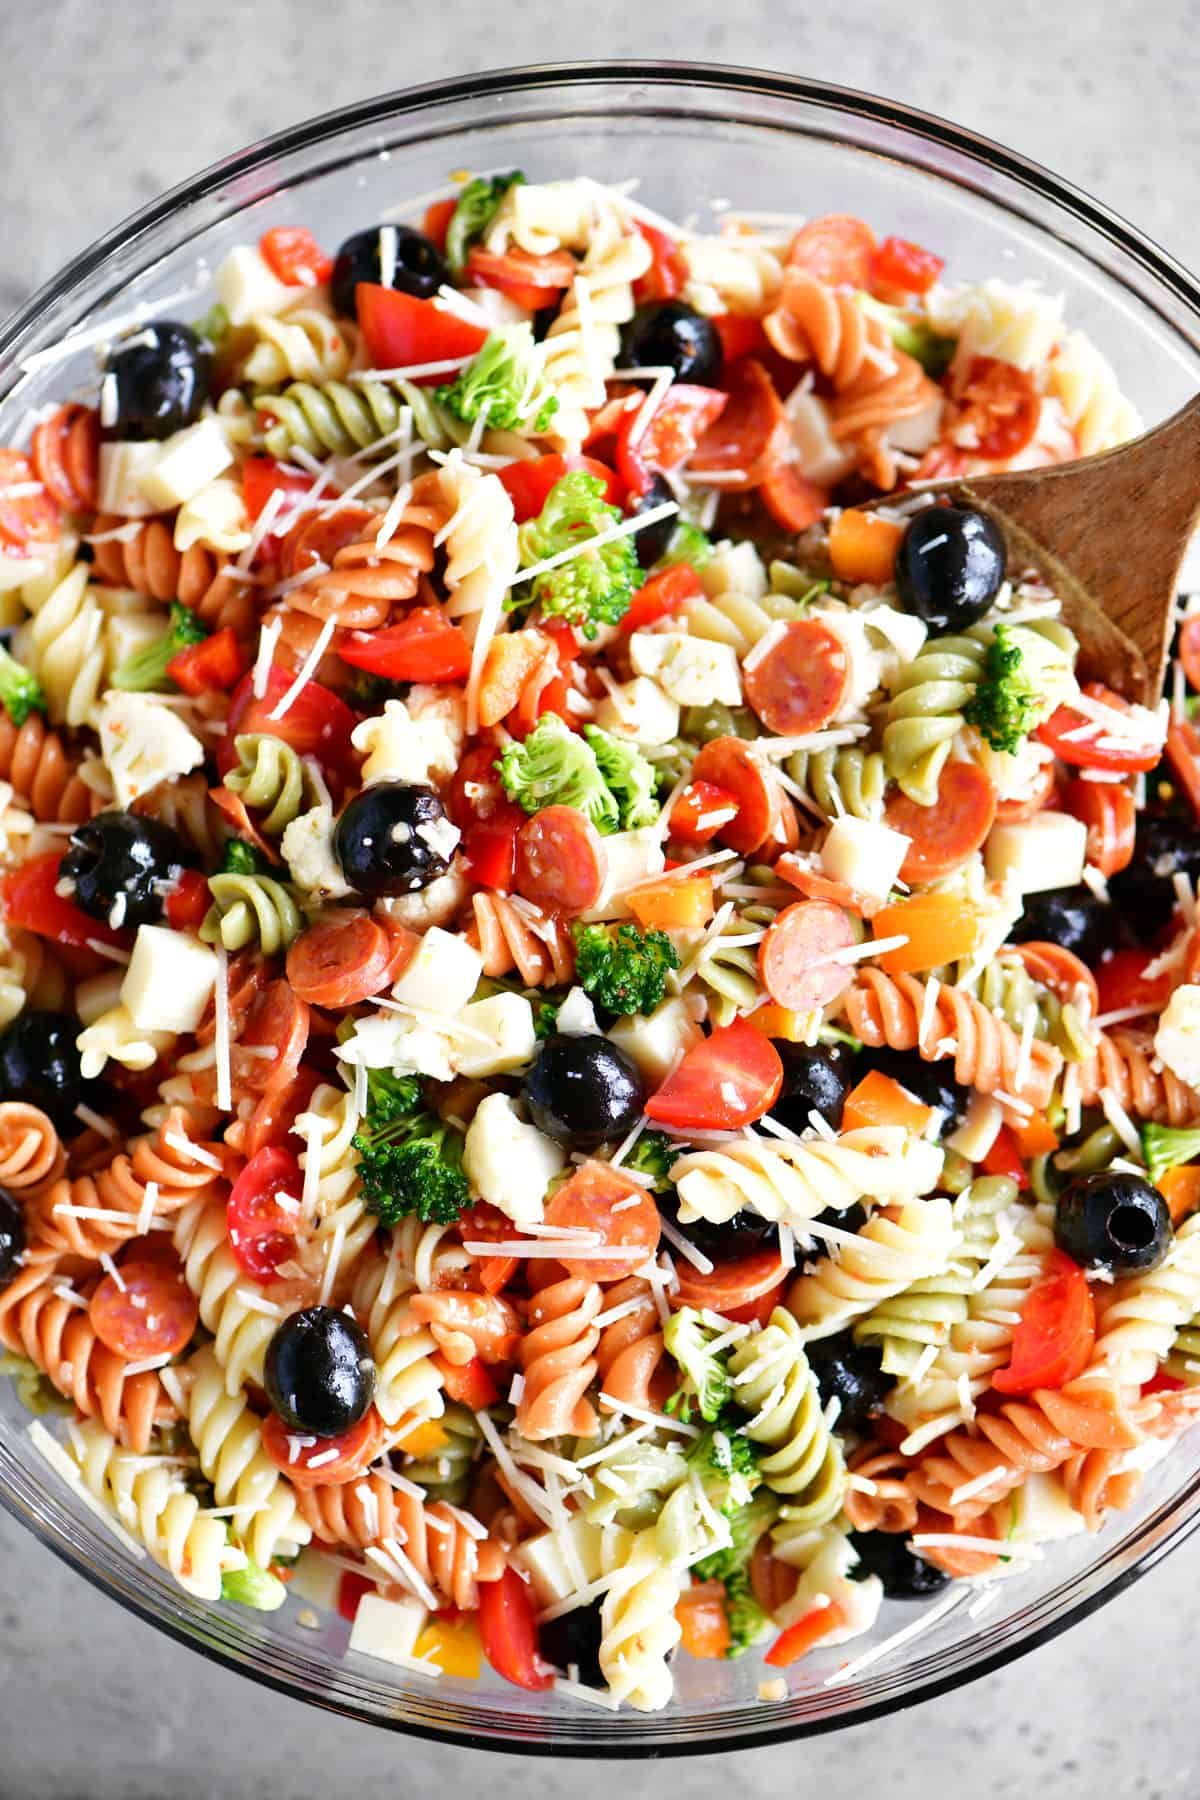 Italian Pasta Salad Is An Easy Flavorful Side Dish With Veggies Pepperoni Cheese And Italian Dressing Pasta Salad Italian Pasta Salad Spaghetti Pasta Salad